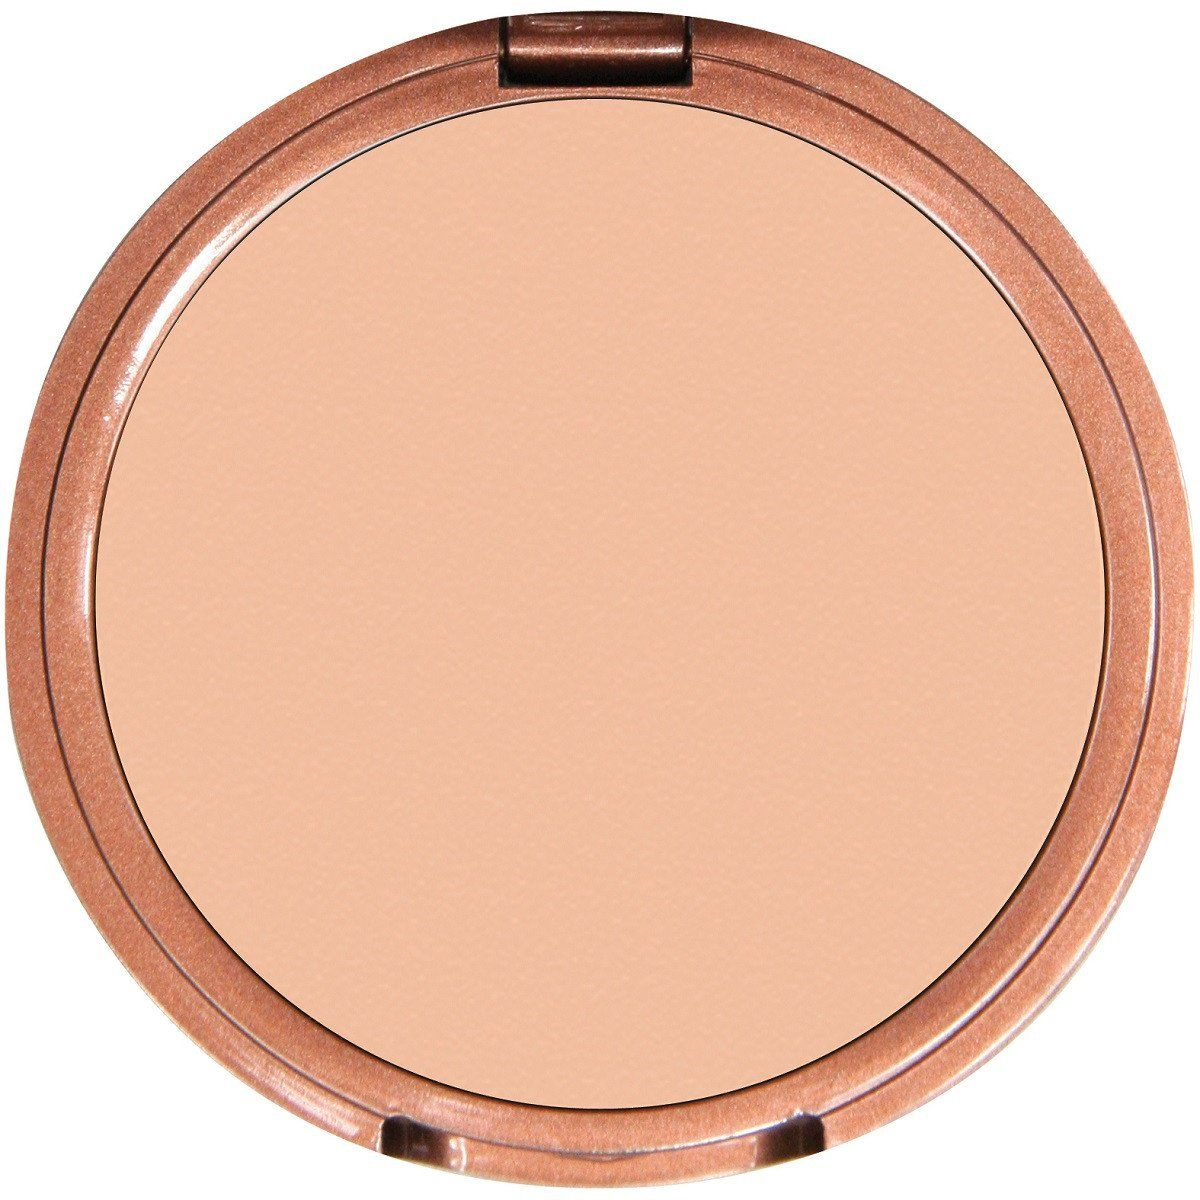 Beauty & Skin Care - Mineral Fusion - Pressed Powder Foundation - Cool 2 (for Fair Skin With Golden Undertones), 9g